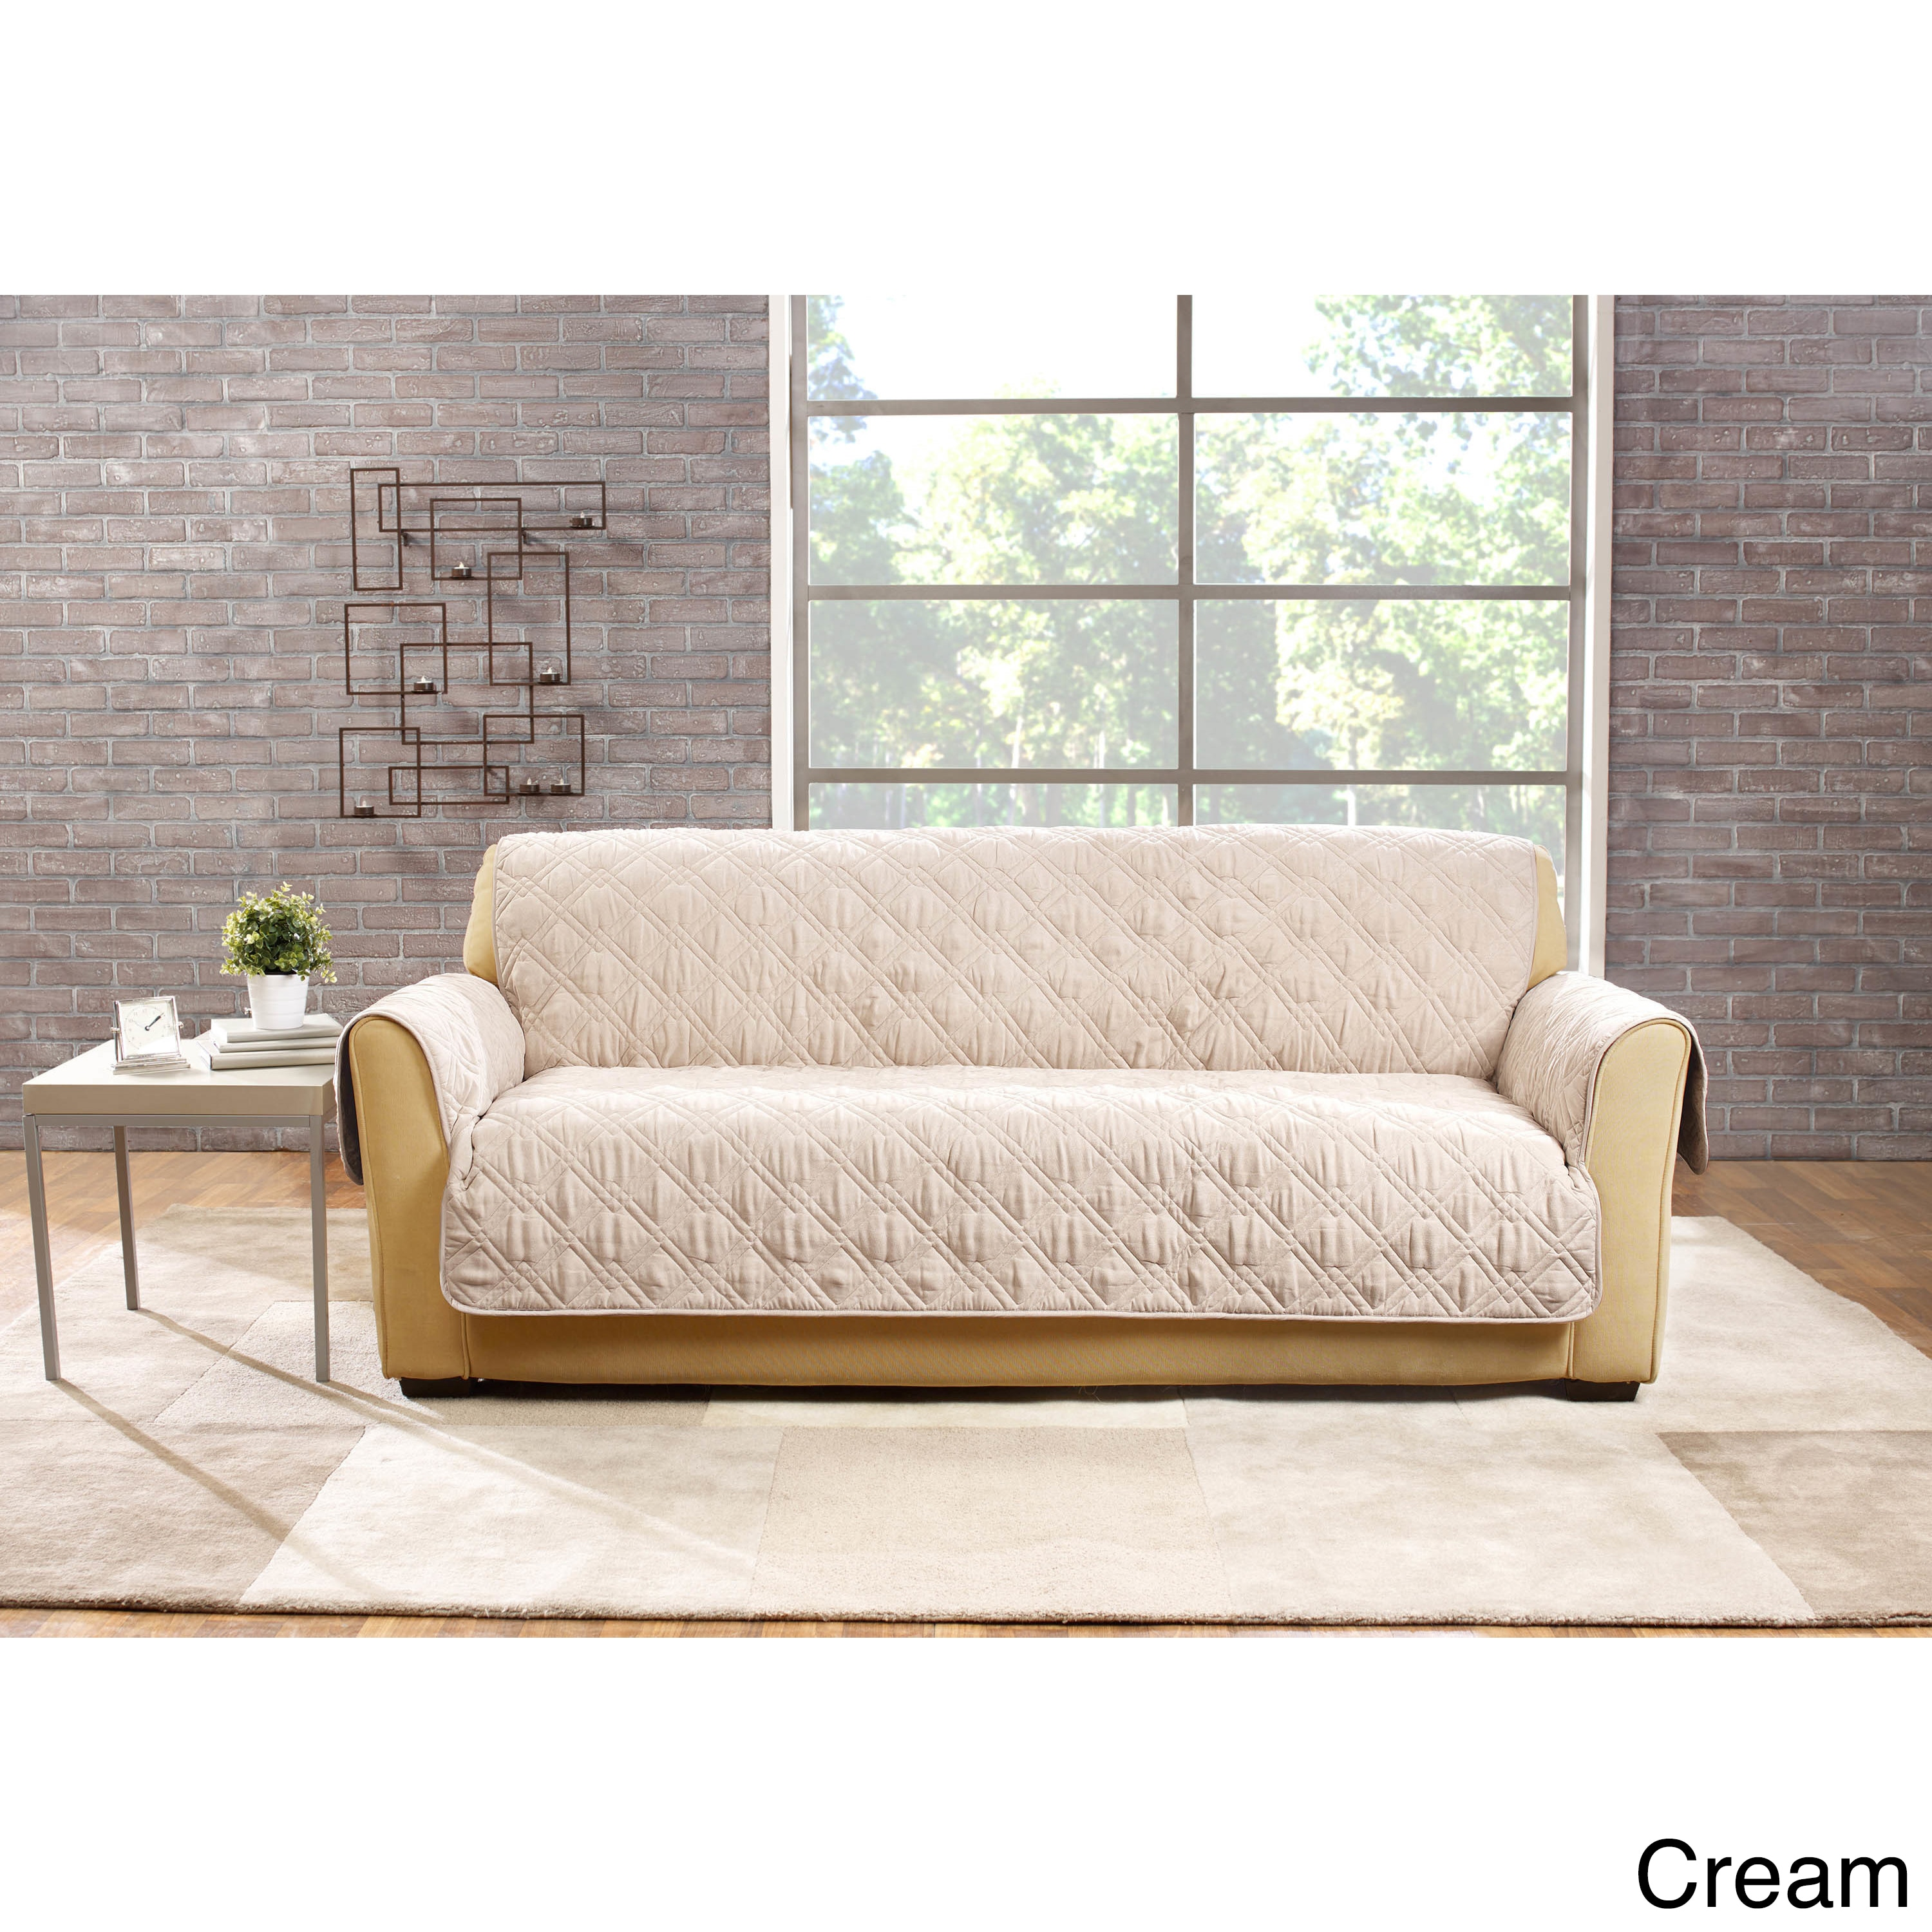 Sure Fit Deluxe Non Slip Waterproof Sofa Furniture Protector   Free  Shipping Today   Overstock   19973302